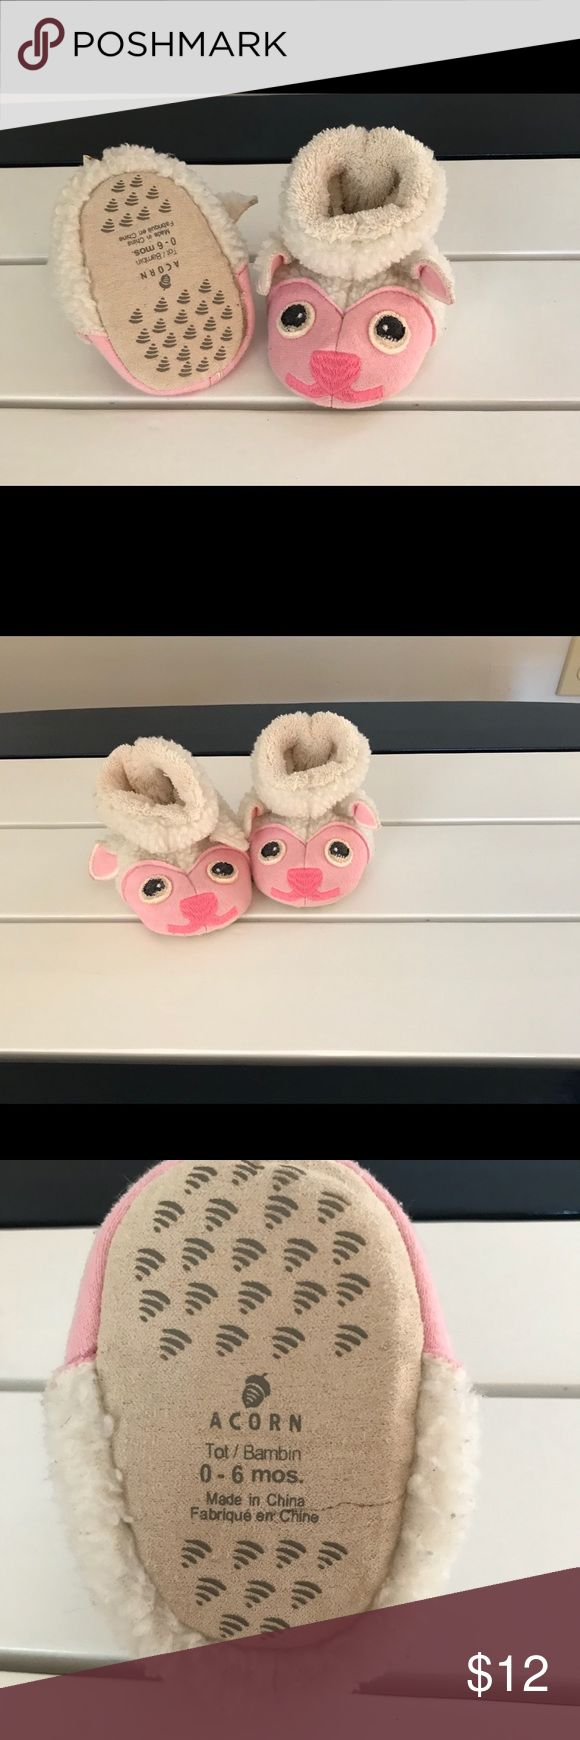 Acorn Lamby Slippers Adorable Acorn Slippers for your babe. Cozy and super soft inner lining. Acorn Shoes Slippers